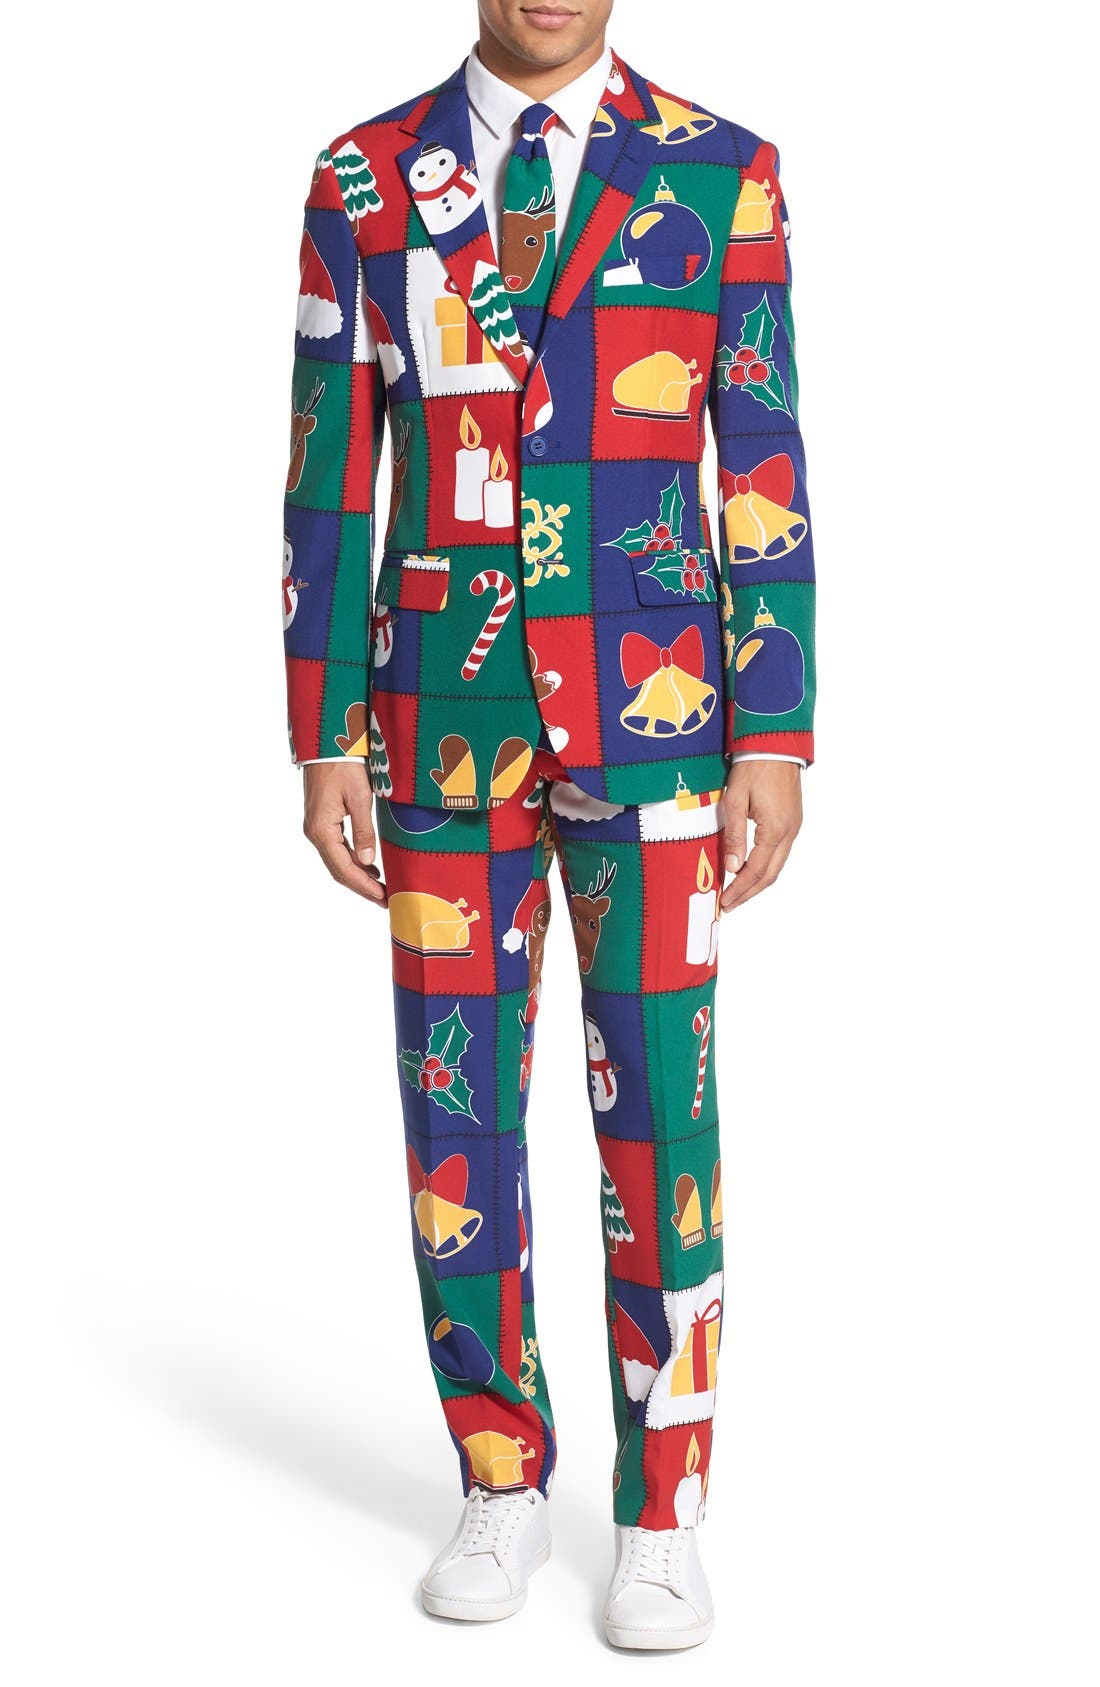 'Quilty Pleasure' Holiday Suit & Tie,                             Main thumbnail 1, color,                             300